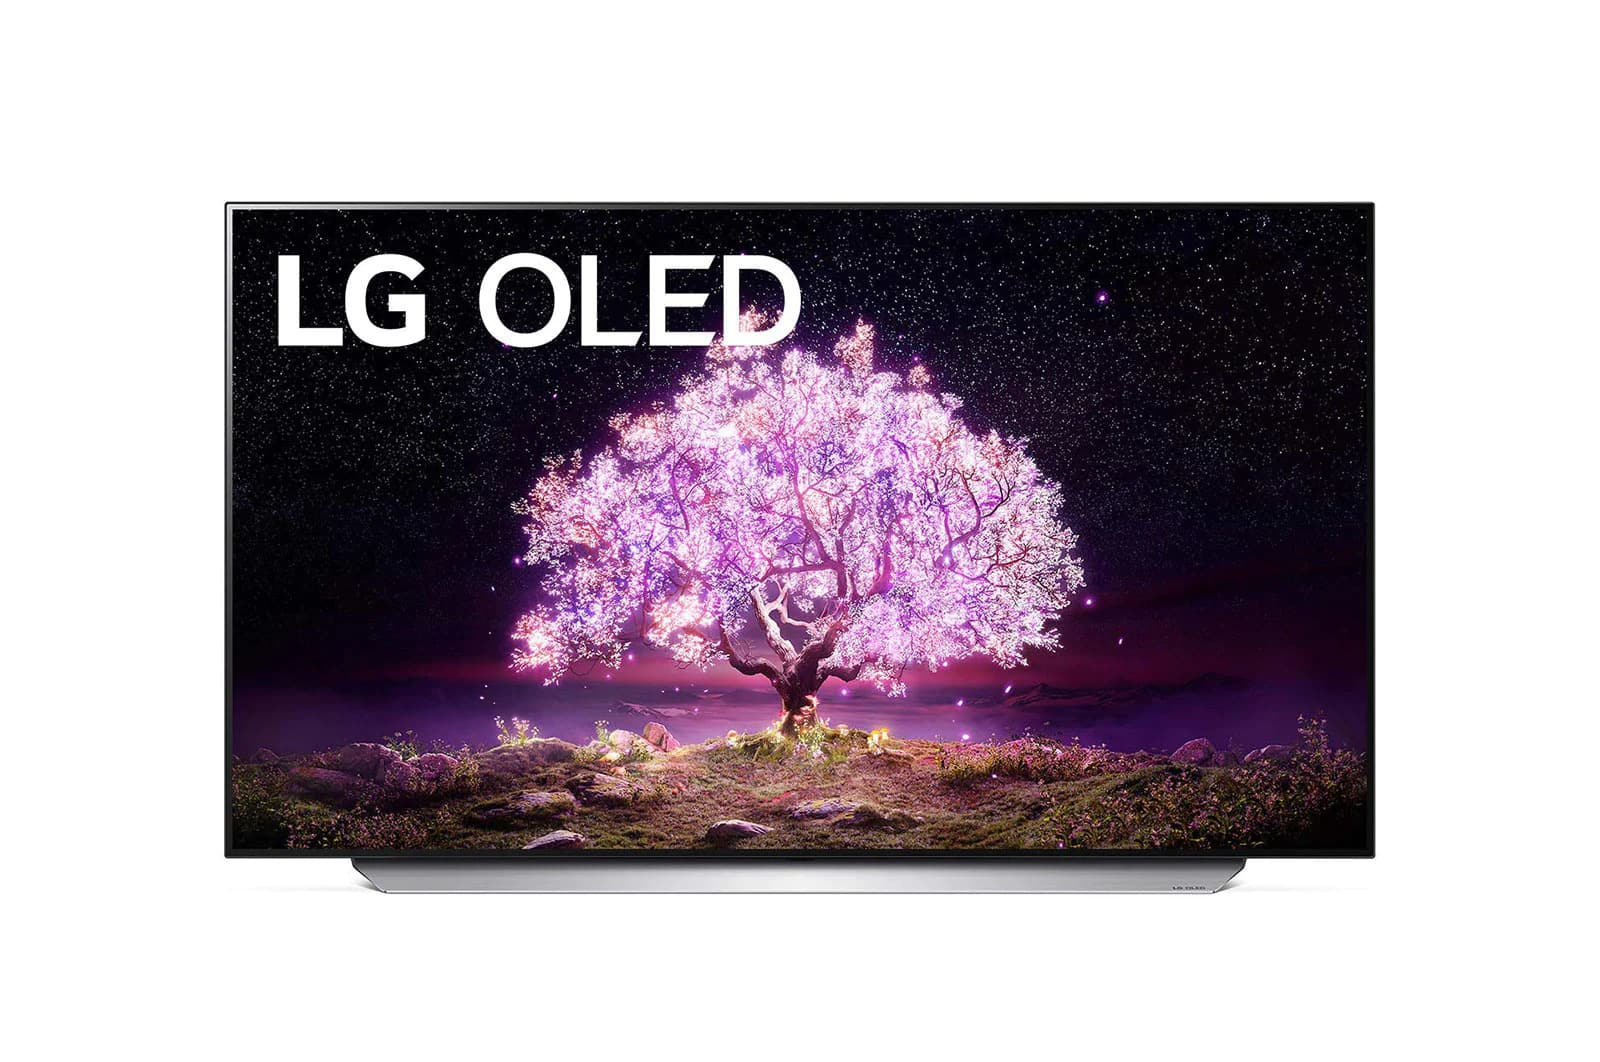 Nuove smart TV LG OLED 4K HDR10 Pro Serie C15 disponibili